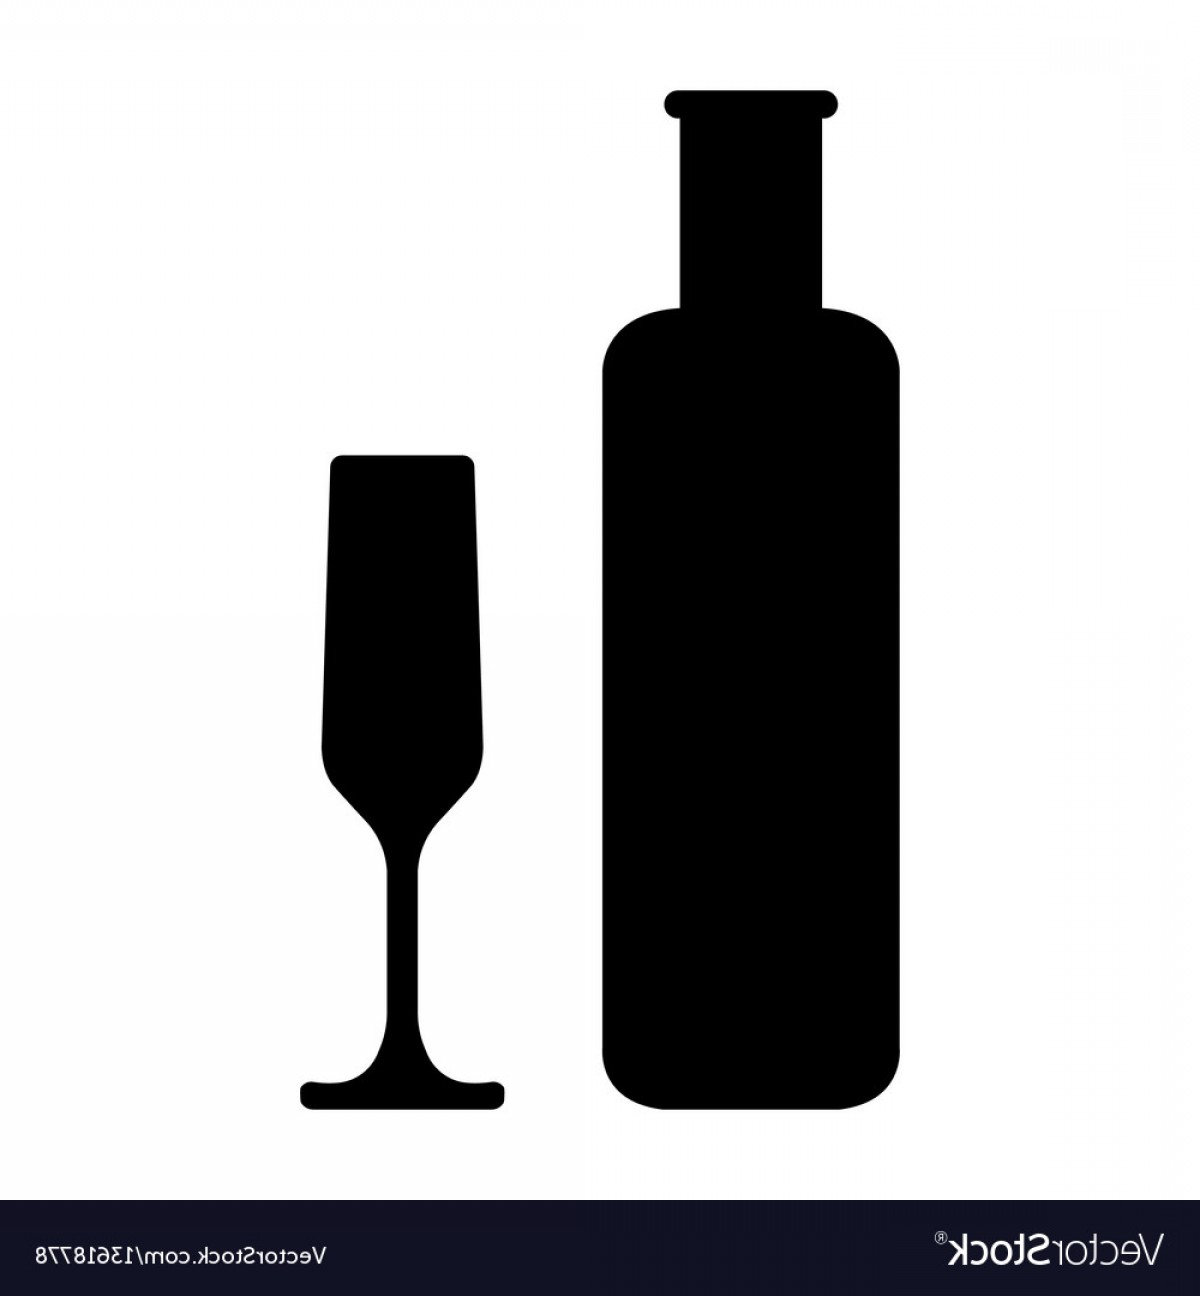 Alcohol Vector: Bottles And Glasse Of Alcohol Vector